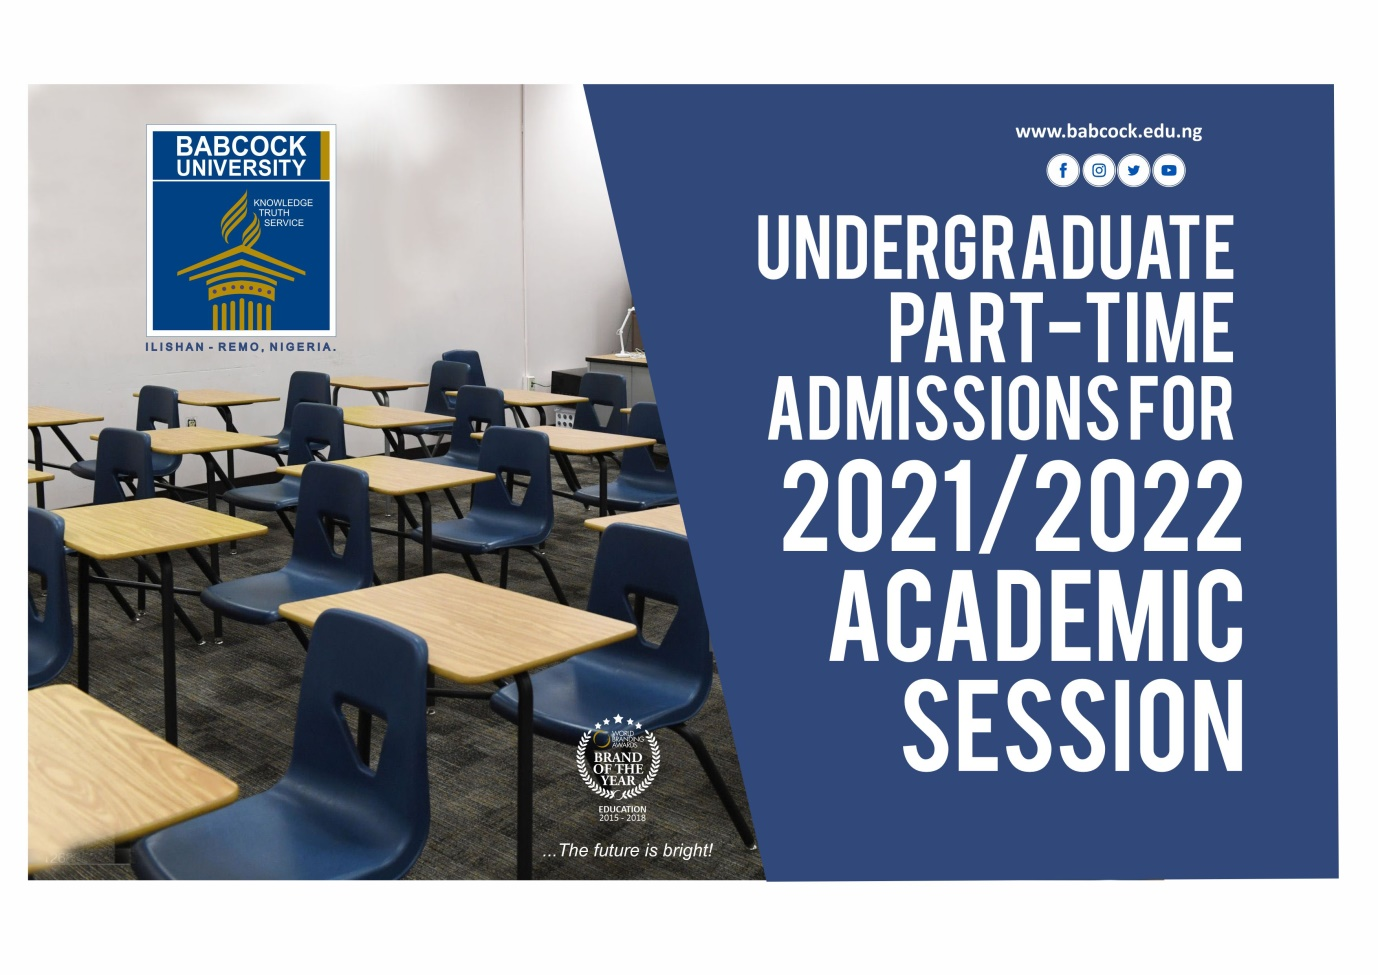 Application for Undergraduate Part-Time Admission is on !!